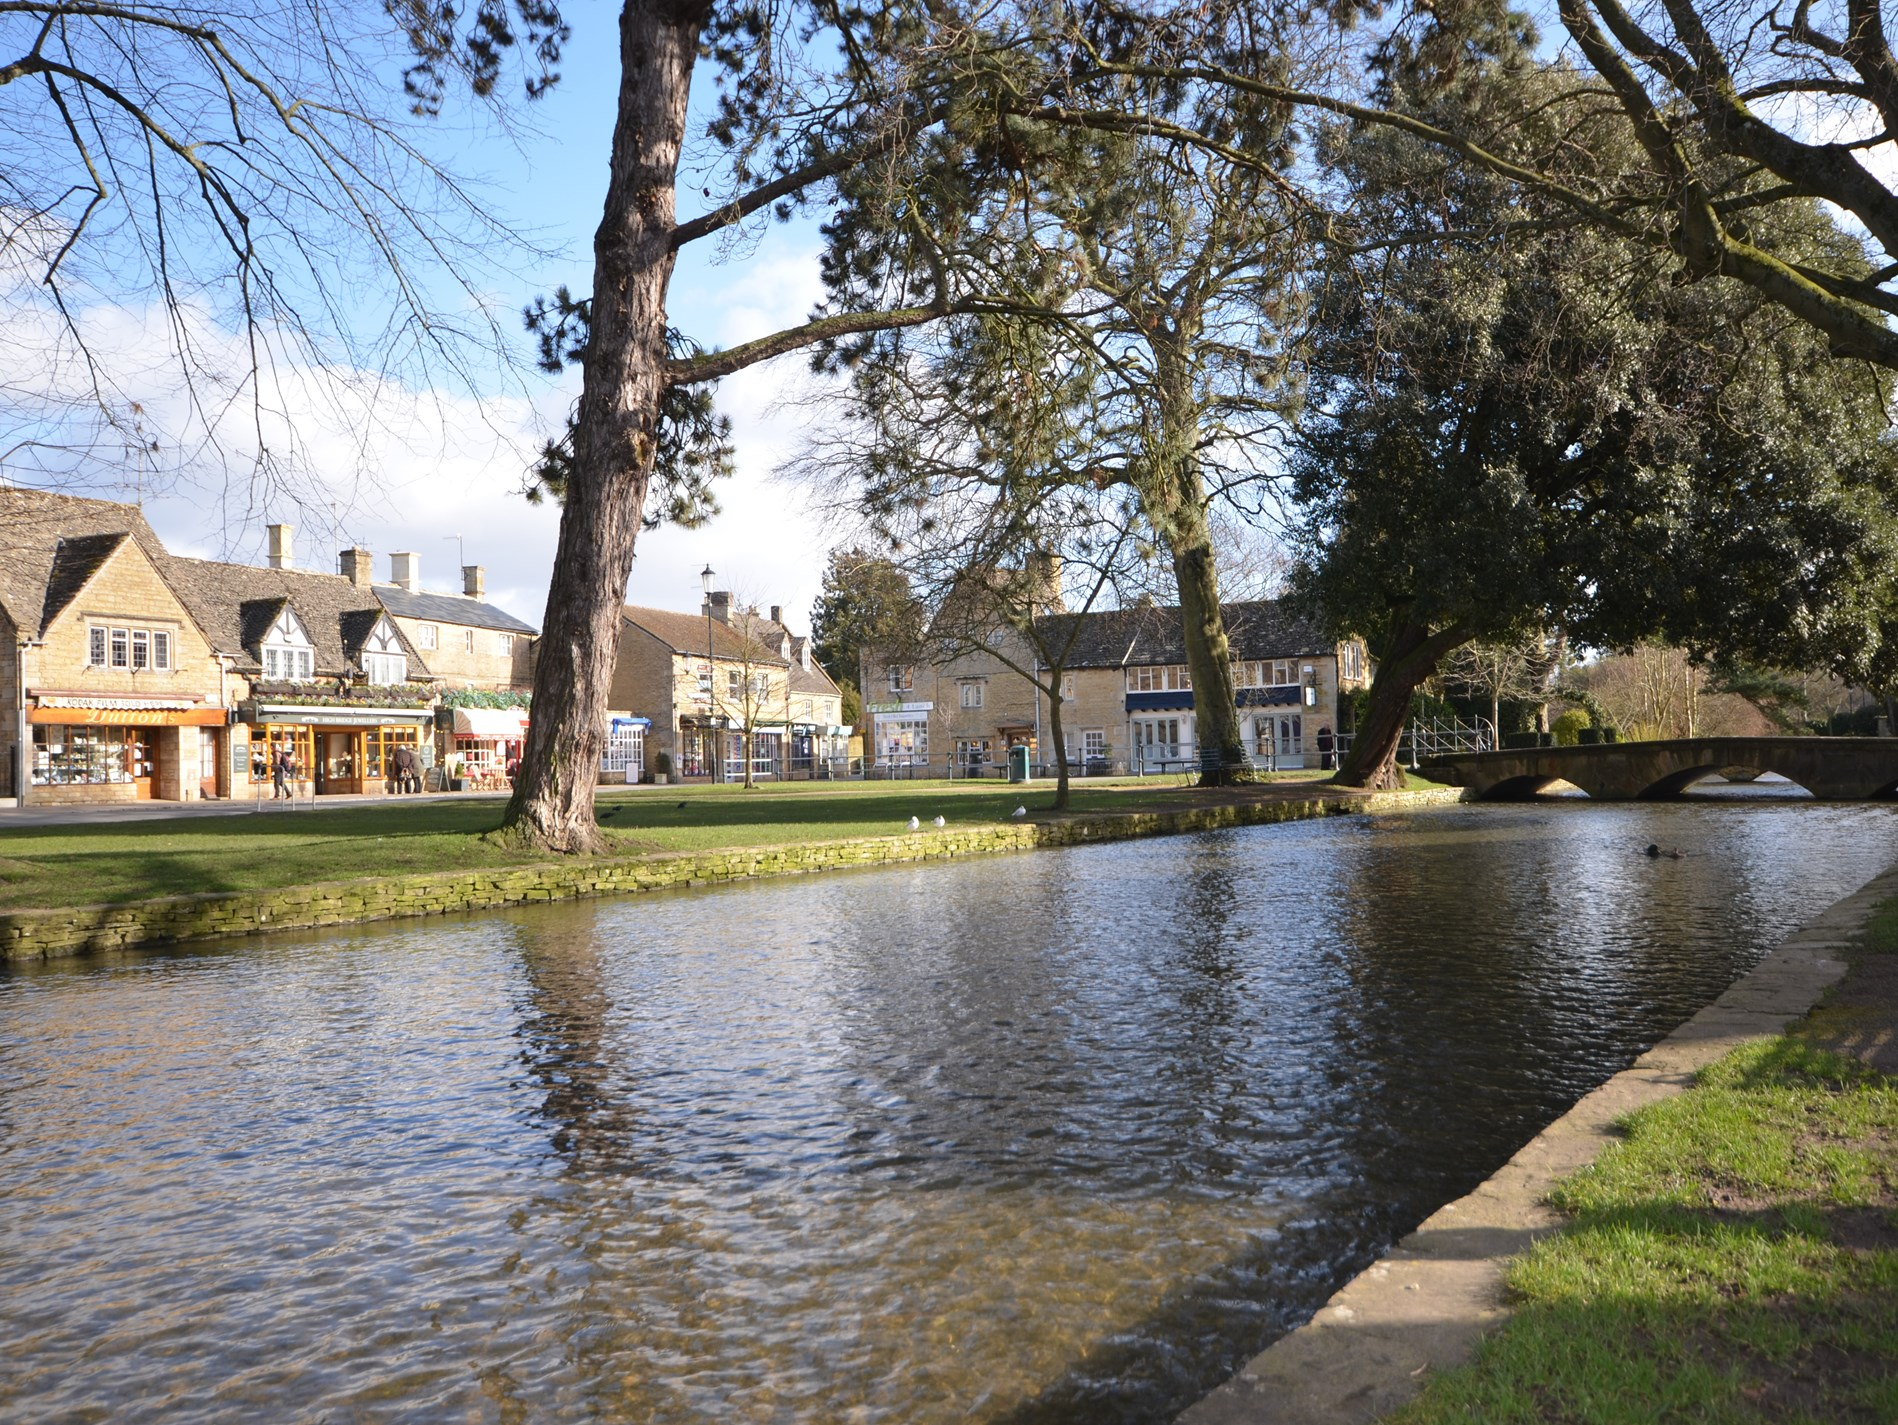 Dip your feet in the famous Bourton waters